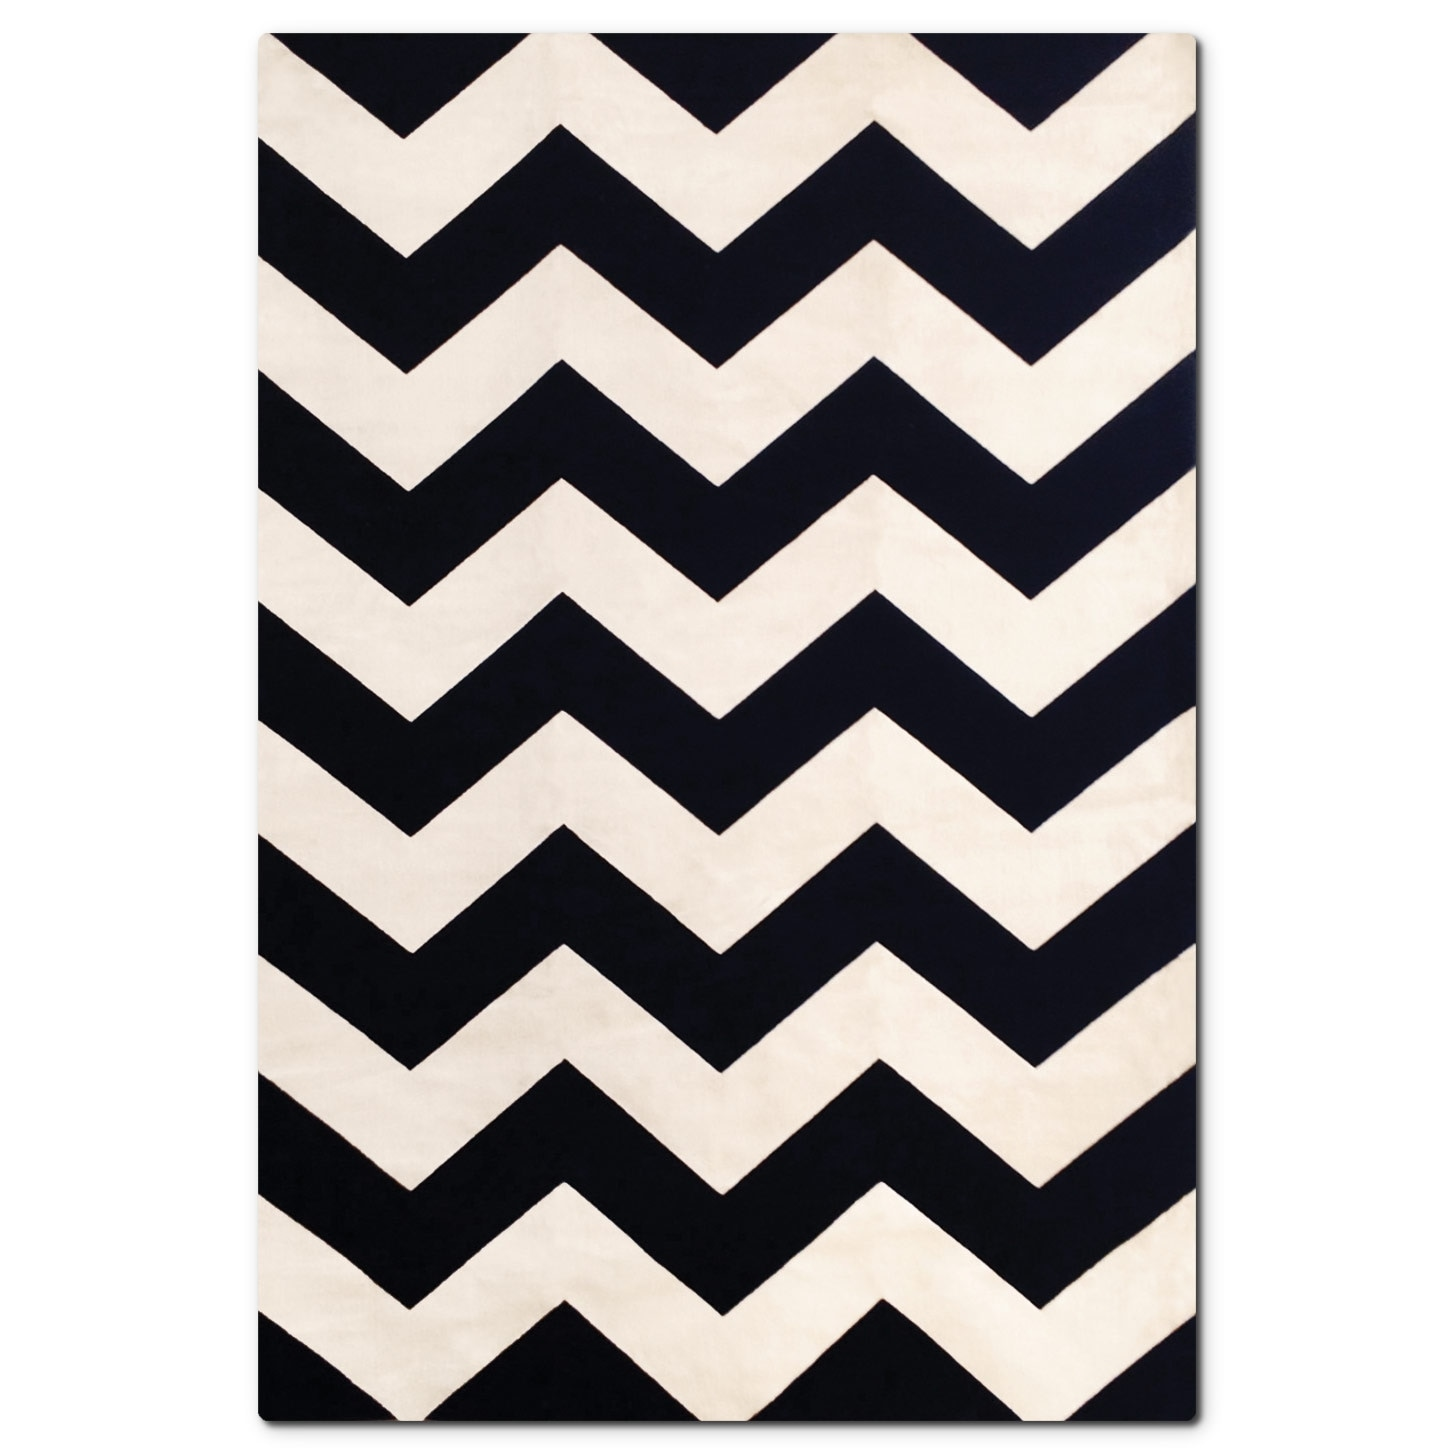 Sonoma Black Chevron Area Rug (5' x 8')